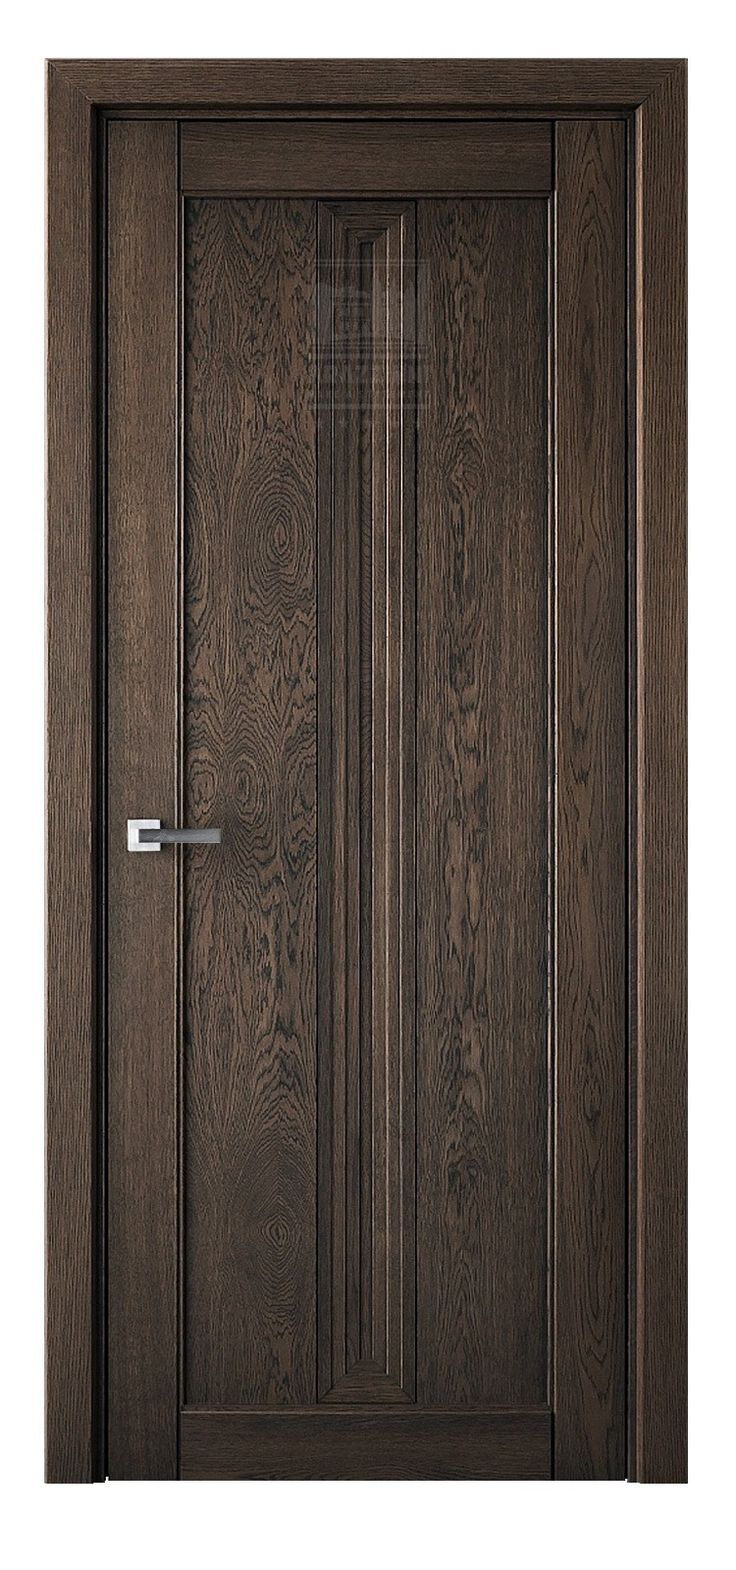 Arazzinni Ego E6121 Interior Door Gray Oak